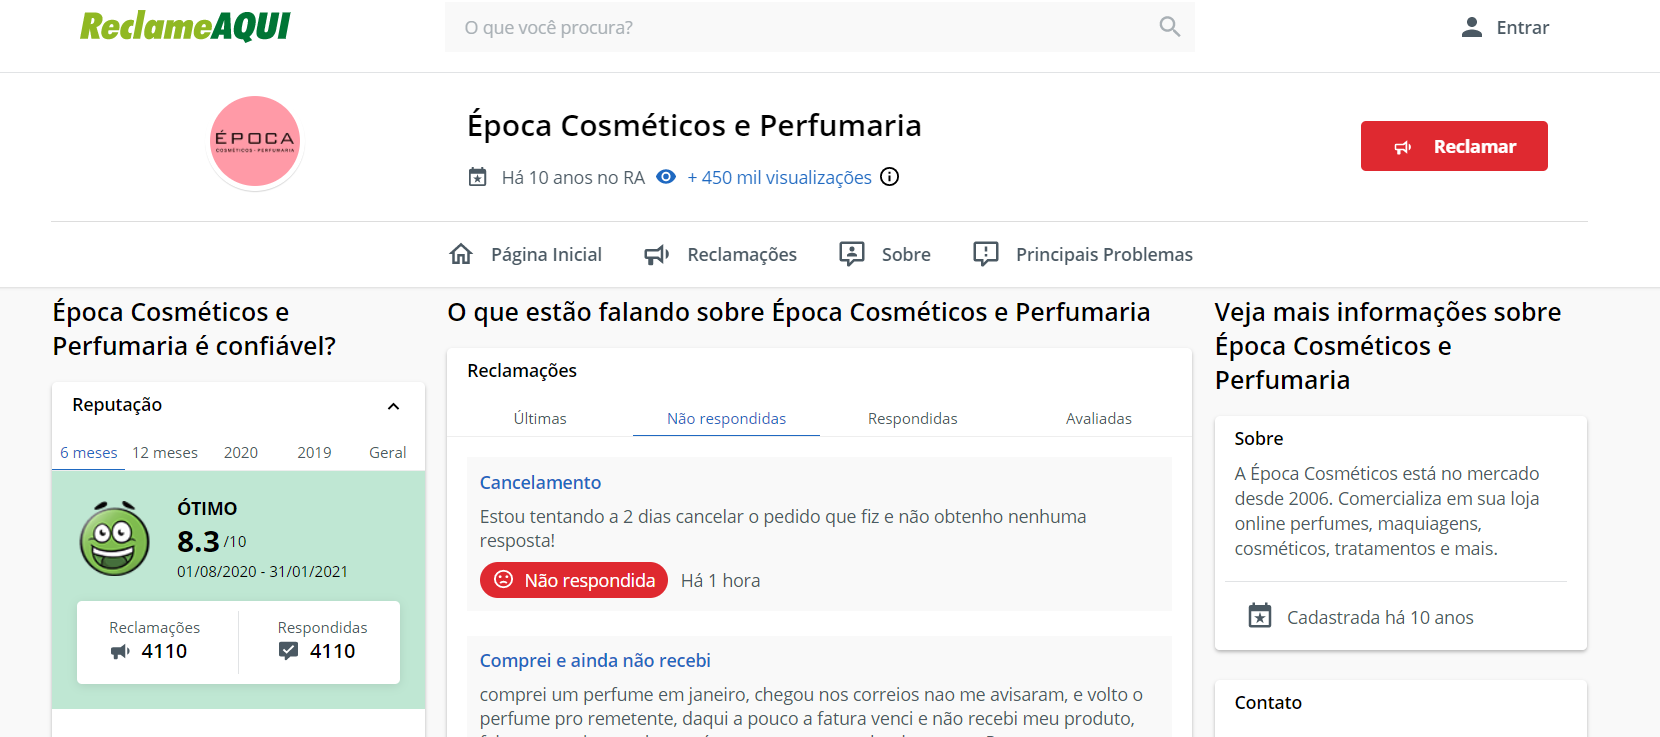 Época Cosméticos no reclame aqui